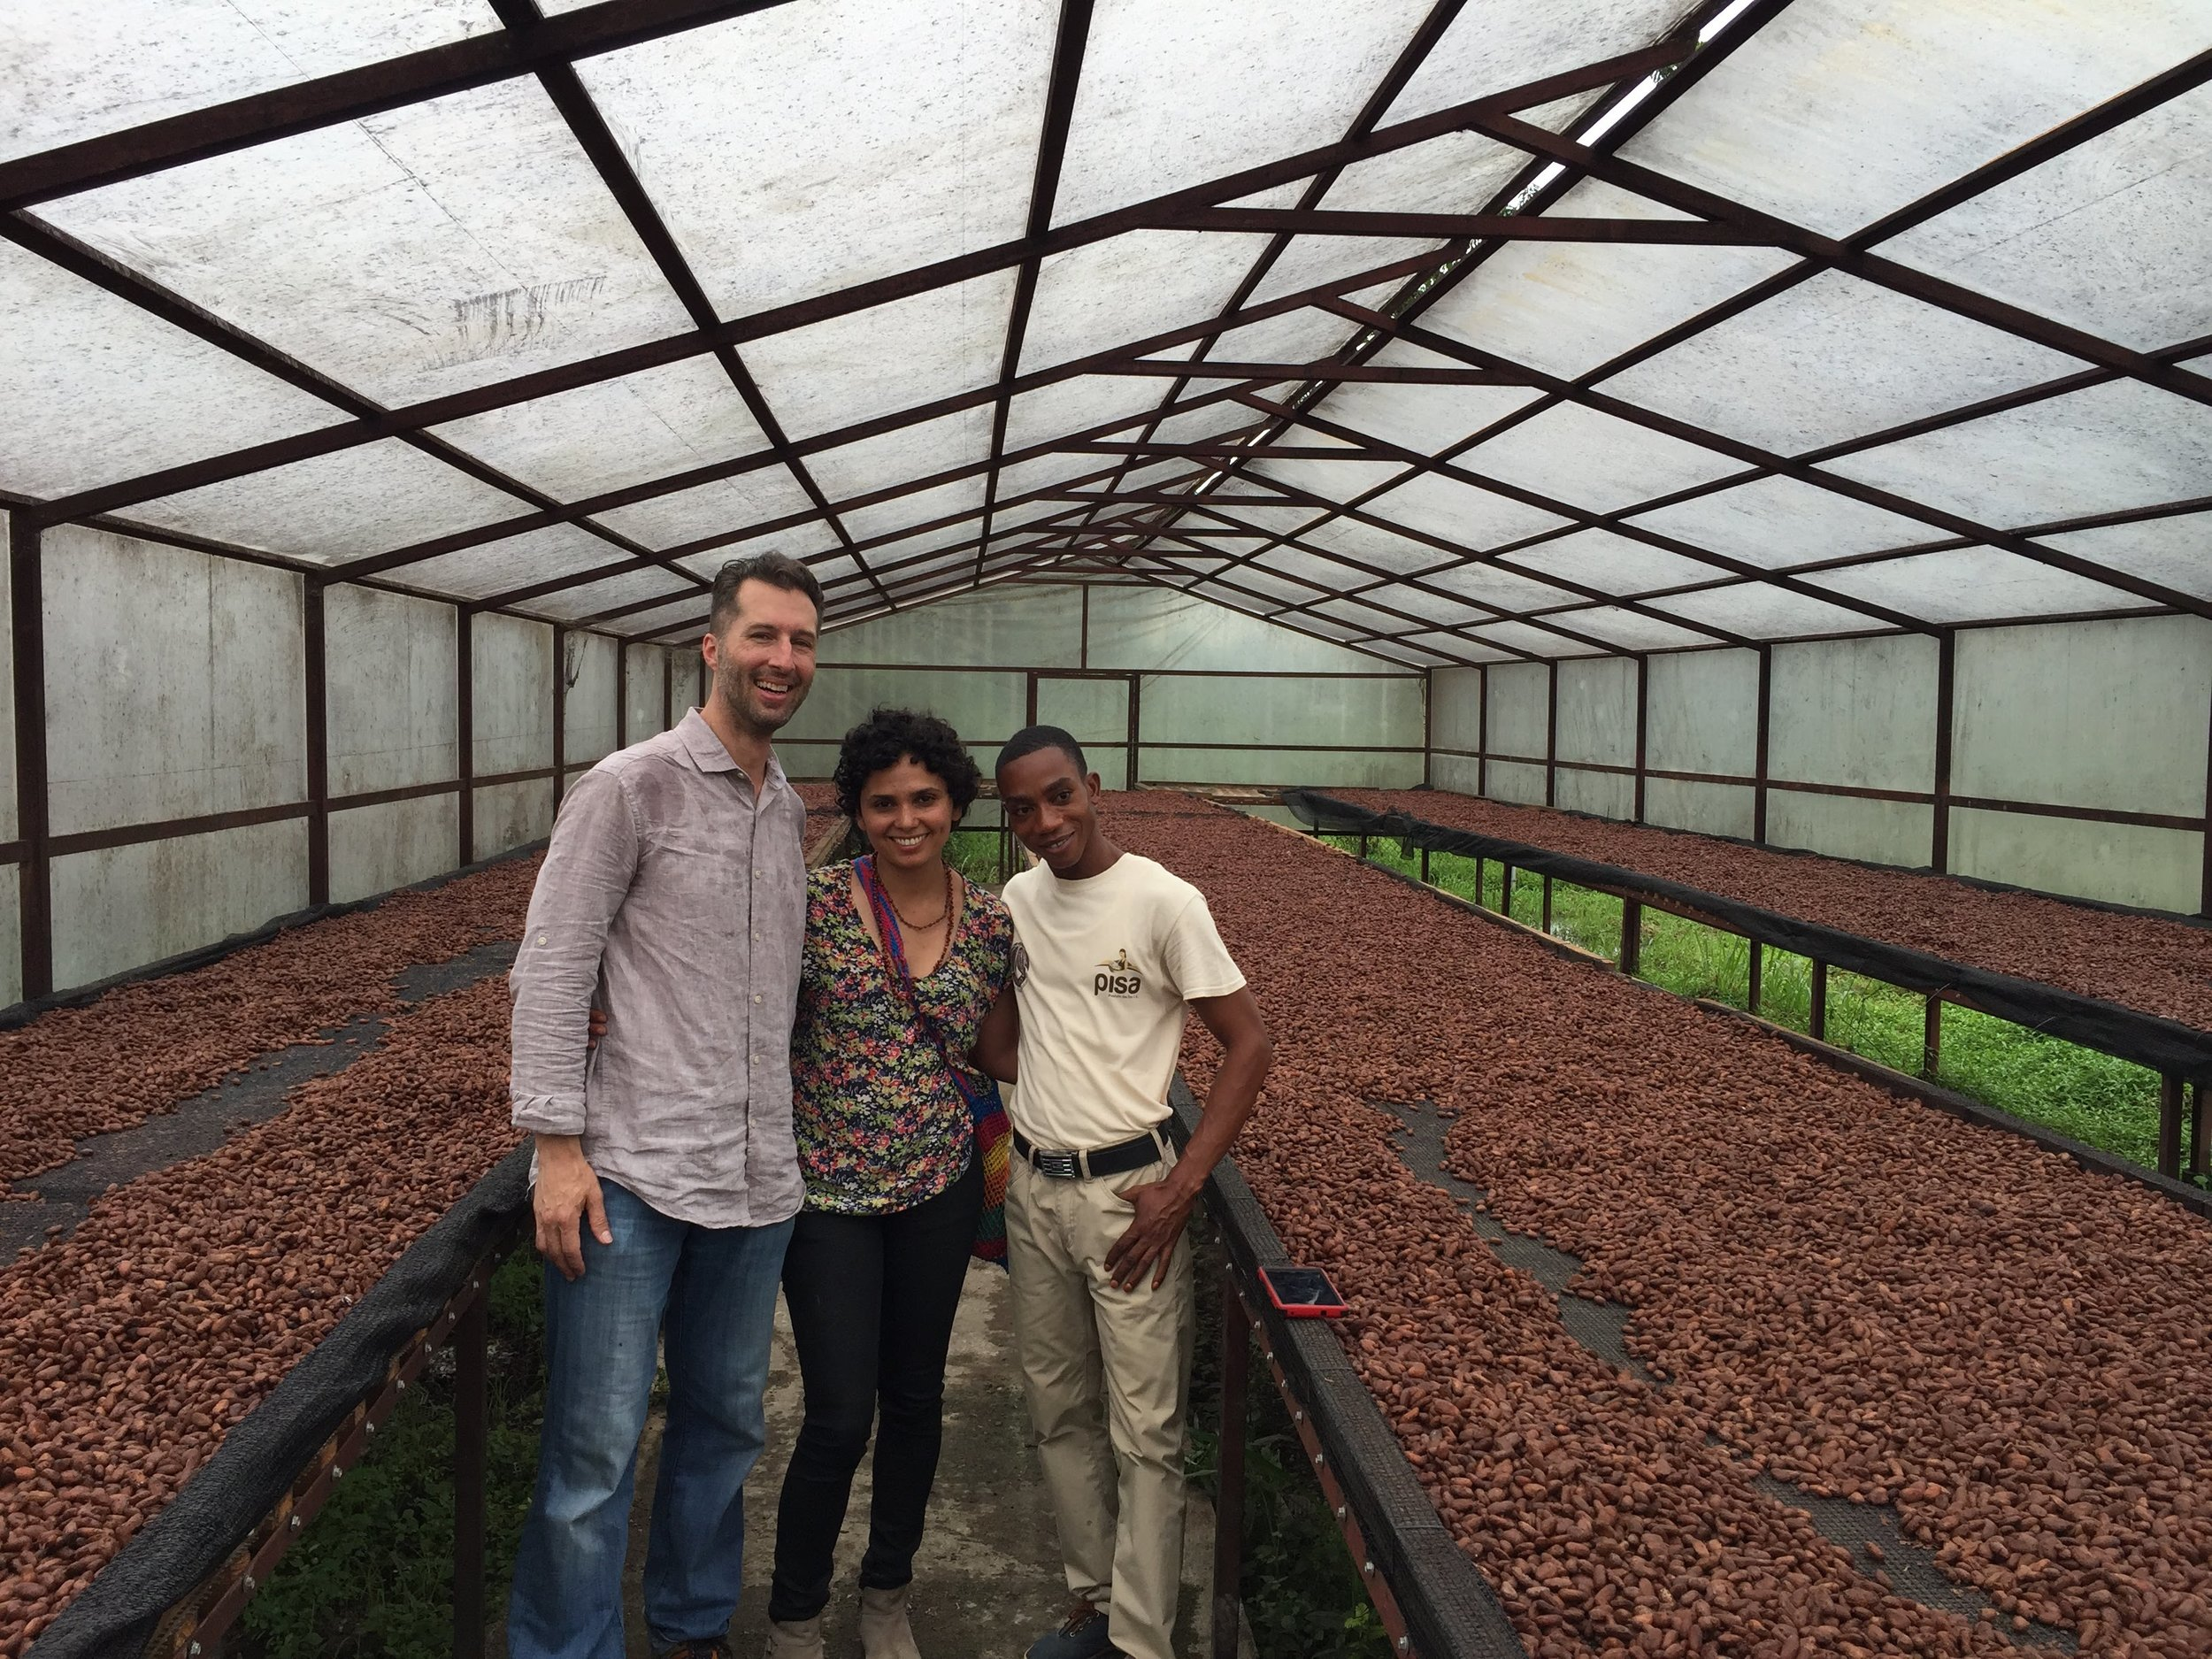 Post-Fermentation - Touring the new drying beds with Chiquito and seeing the care that they put into handling Cacao at PISA in Acul du Nord, Haiti.